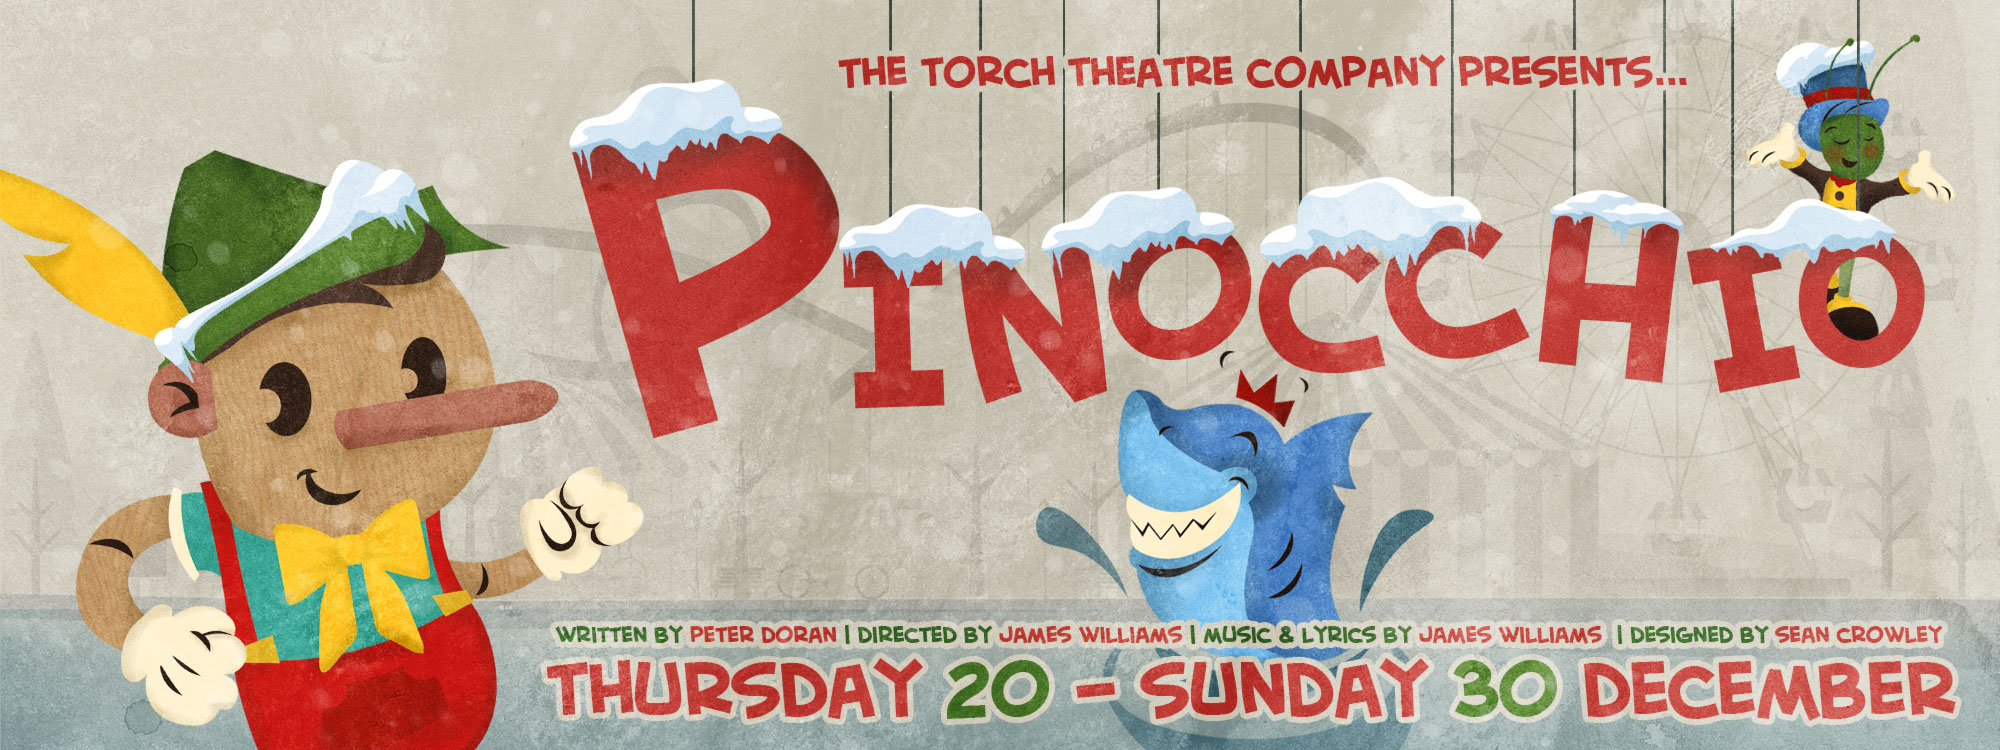 IT'S THE MOST WONDERFUL TIME OF THE YEAR AT THE TORCH THEATRE!